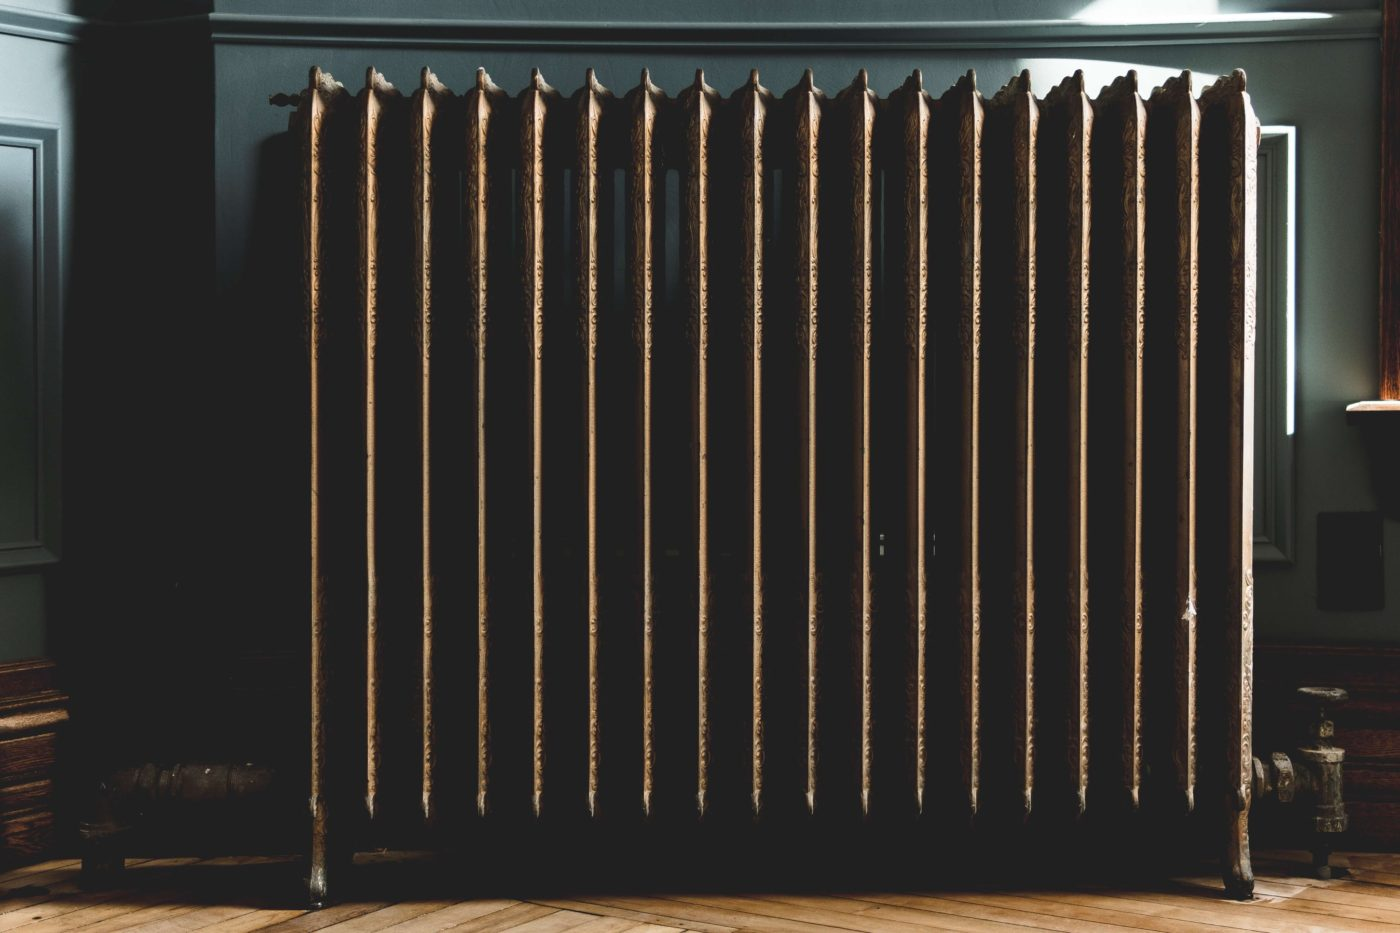 heating radiator in a home